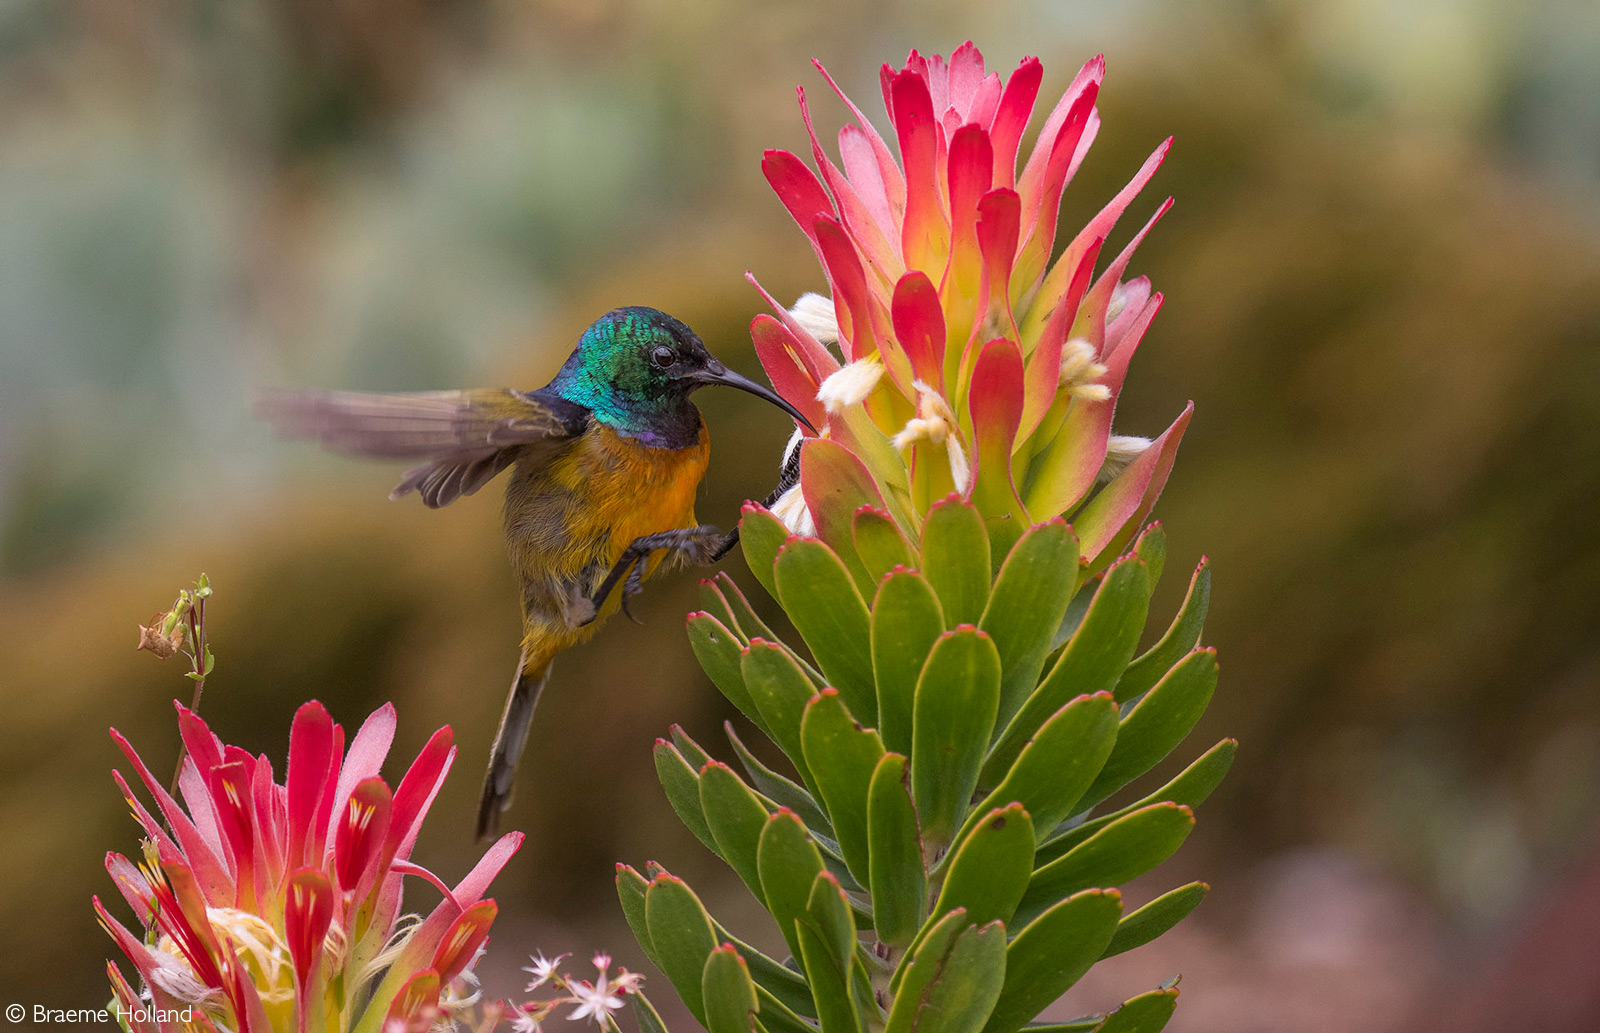 An orange-breasted sunbird in search of the sweet nectar from a common pagoda. Taken Kirstenbosch Botanical Gardens, Cape Town, South Africa © Braeme Holland